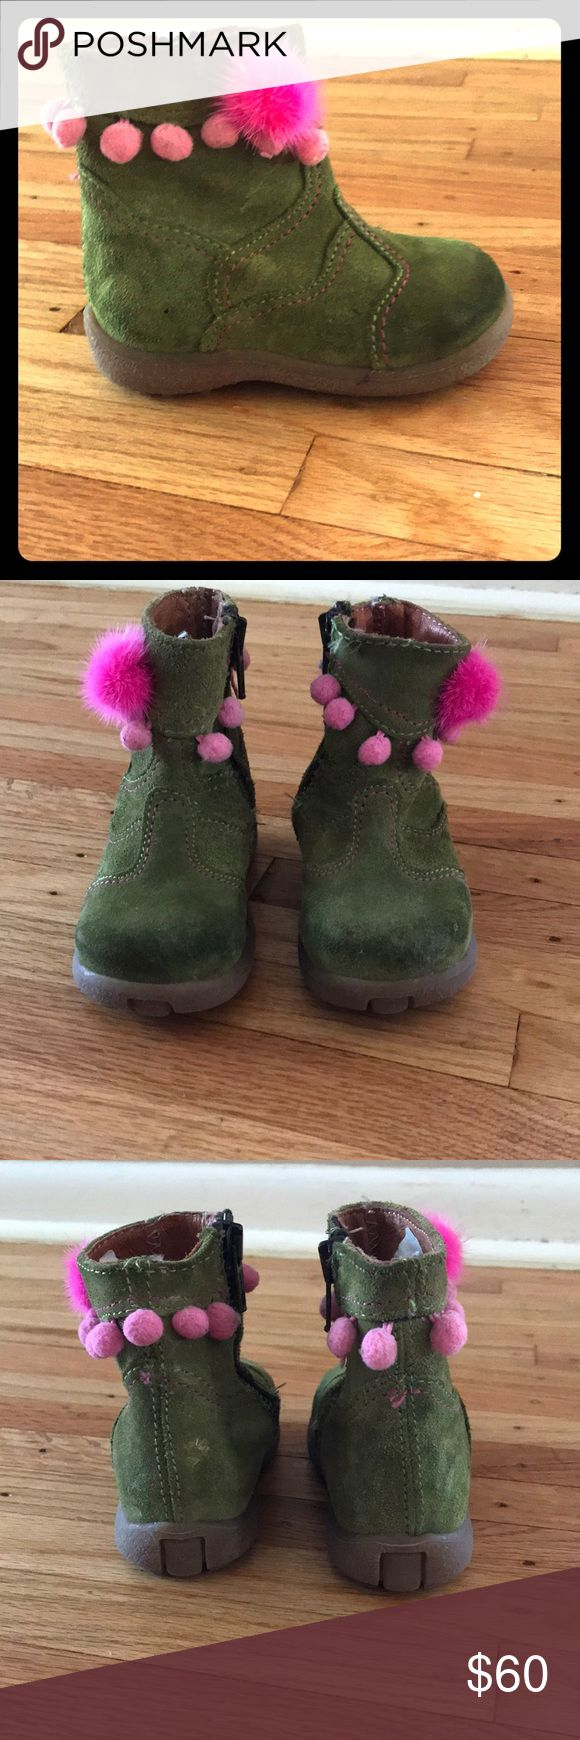 I just added this listing on Poshmark: SALE Infant/toddler Boots by M Kids Made in Italy. #shopmycloset #poshmark #fashion #shopping #style #forsale #M Kids Made in Italy #Other